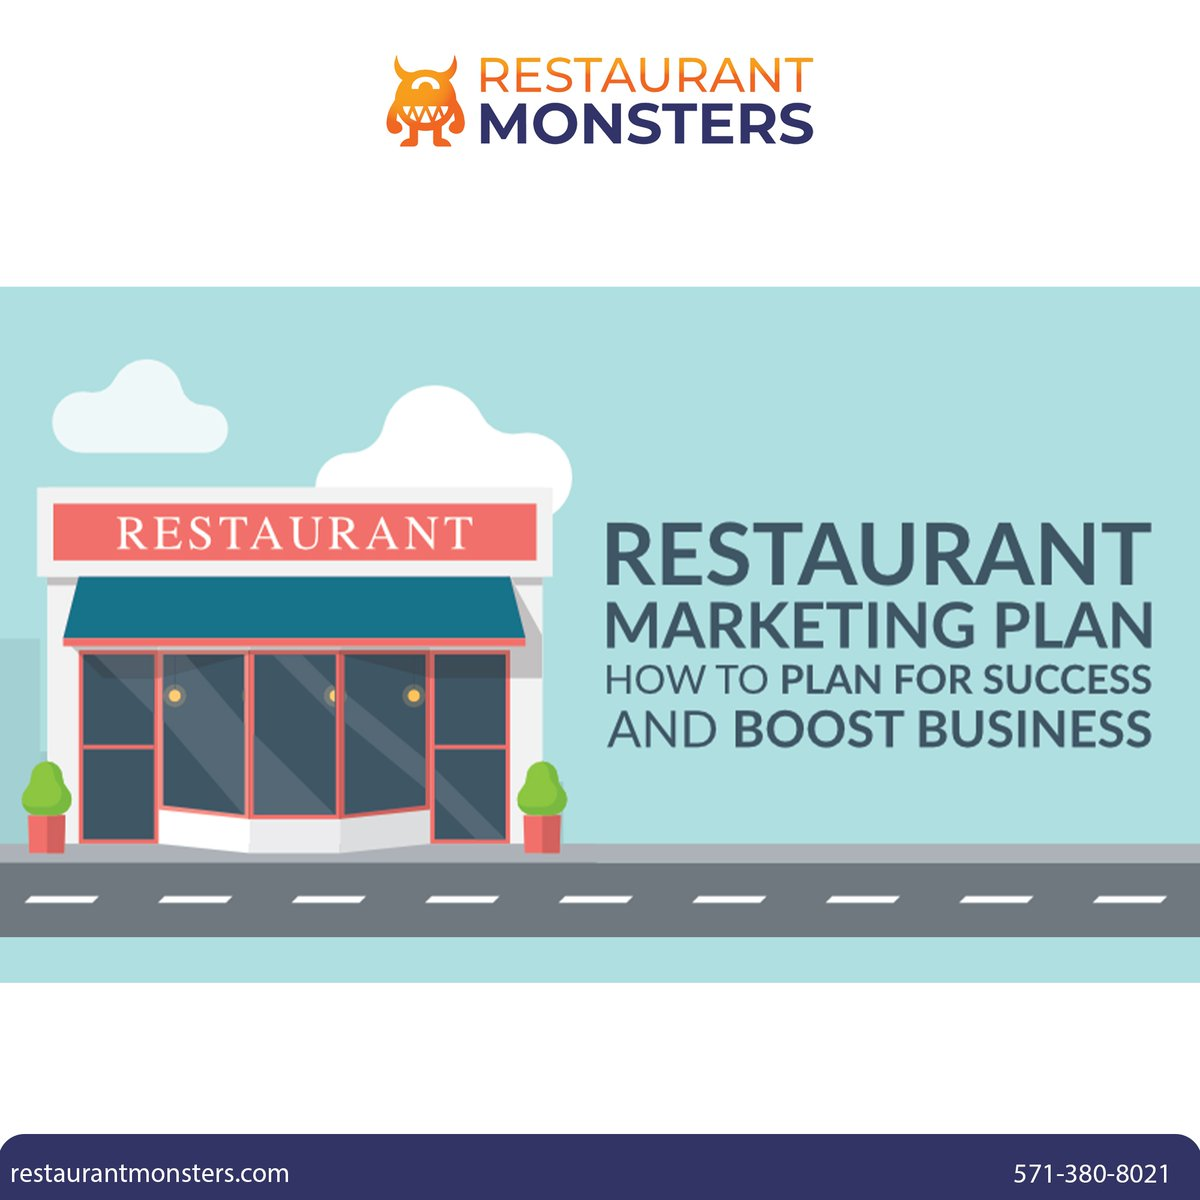 Ask us how we can make a plan for your success and boost your business!  💻 📞(571) 380-8021  #restaurant #food #foodie #marketing #business #socialmedia #branding #digitalmarketing #success #advertising